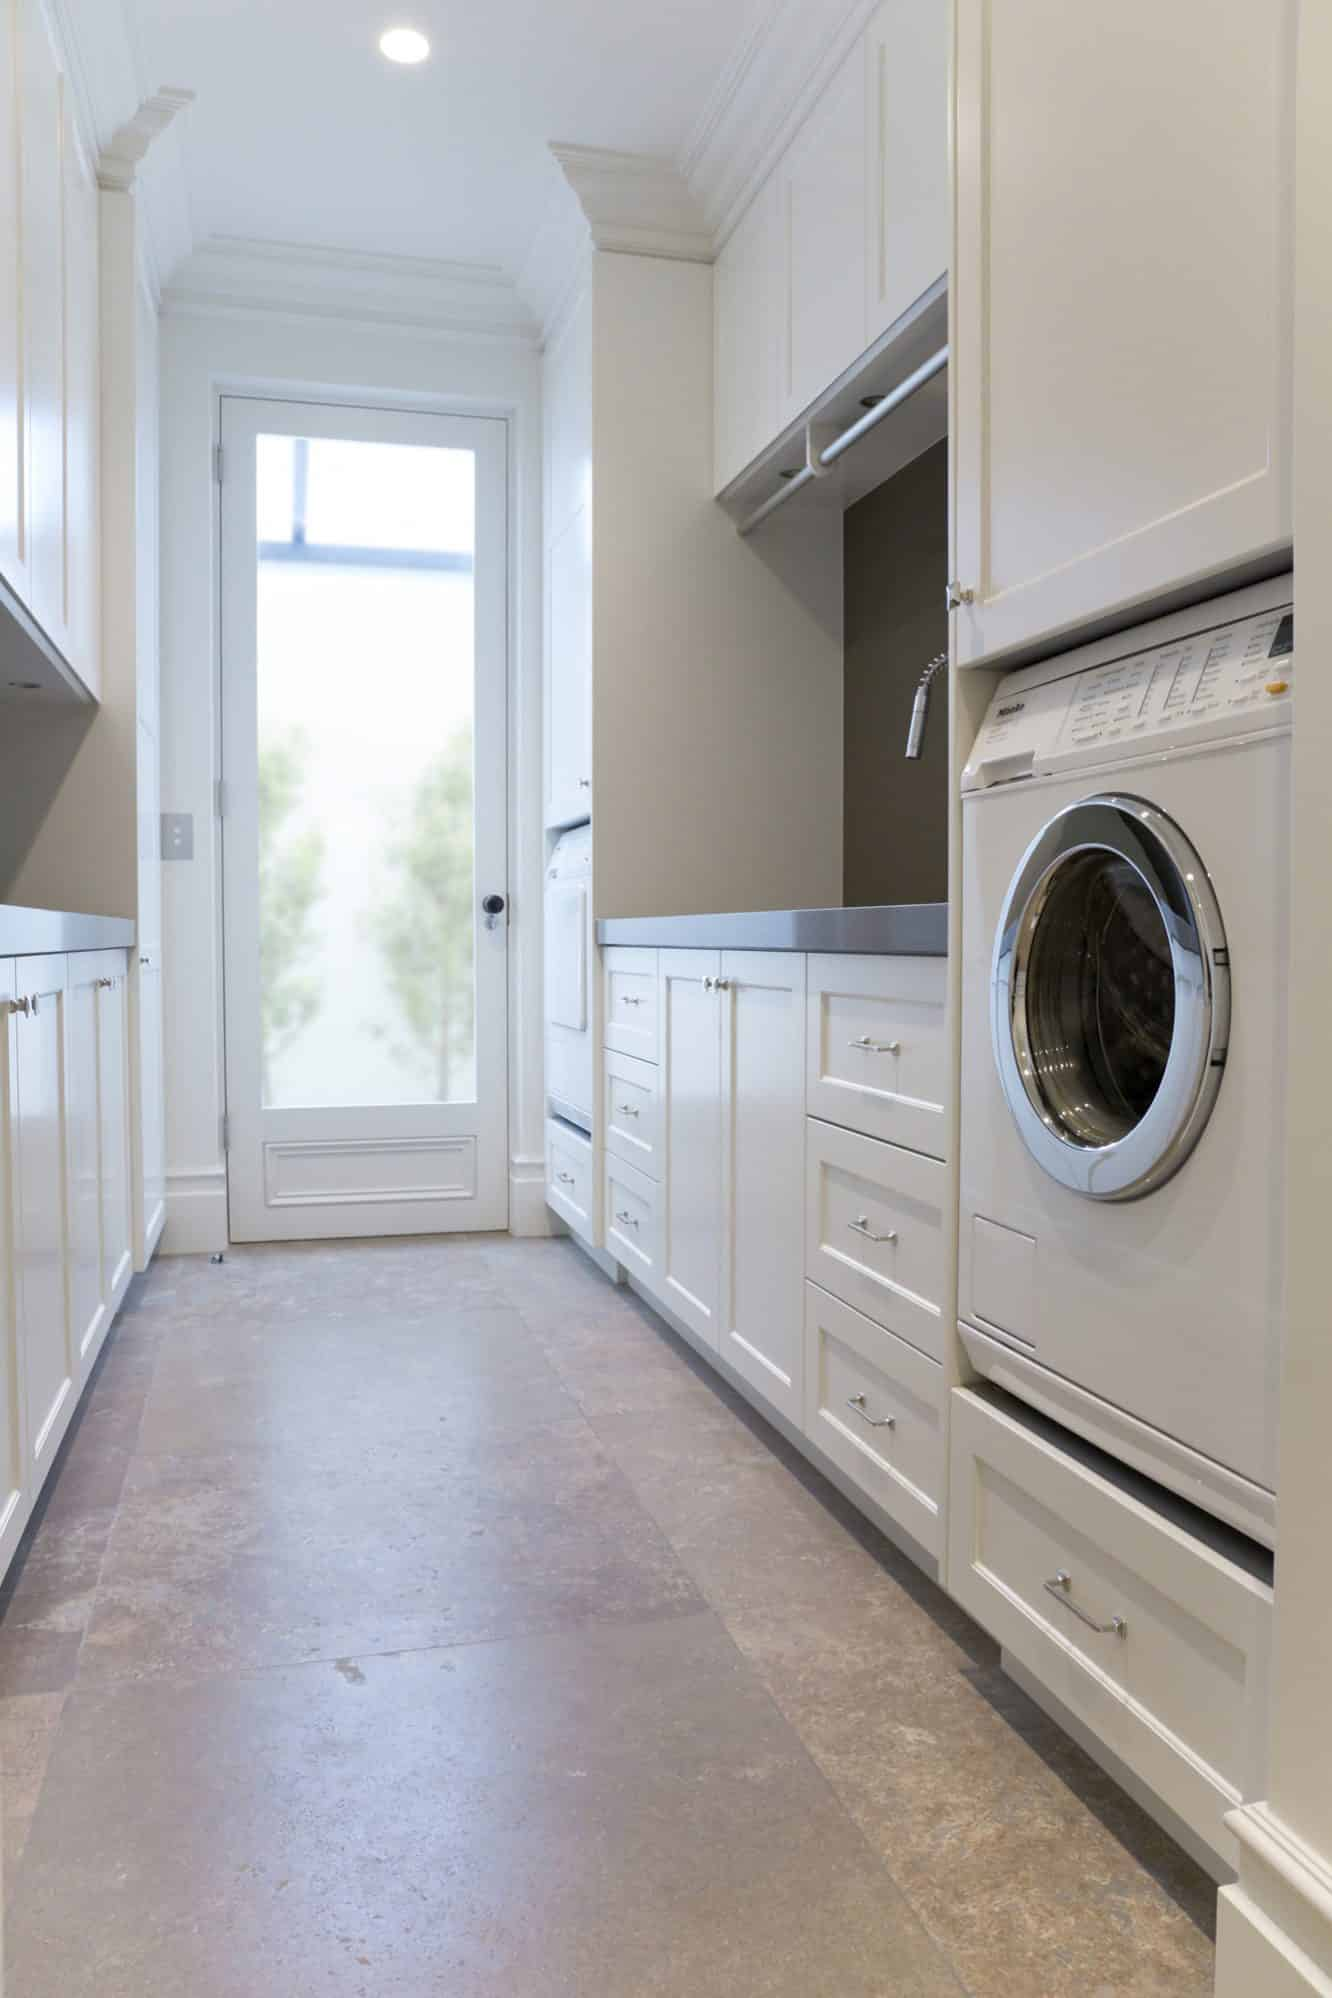 Built in Miele washer and dryer